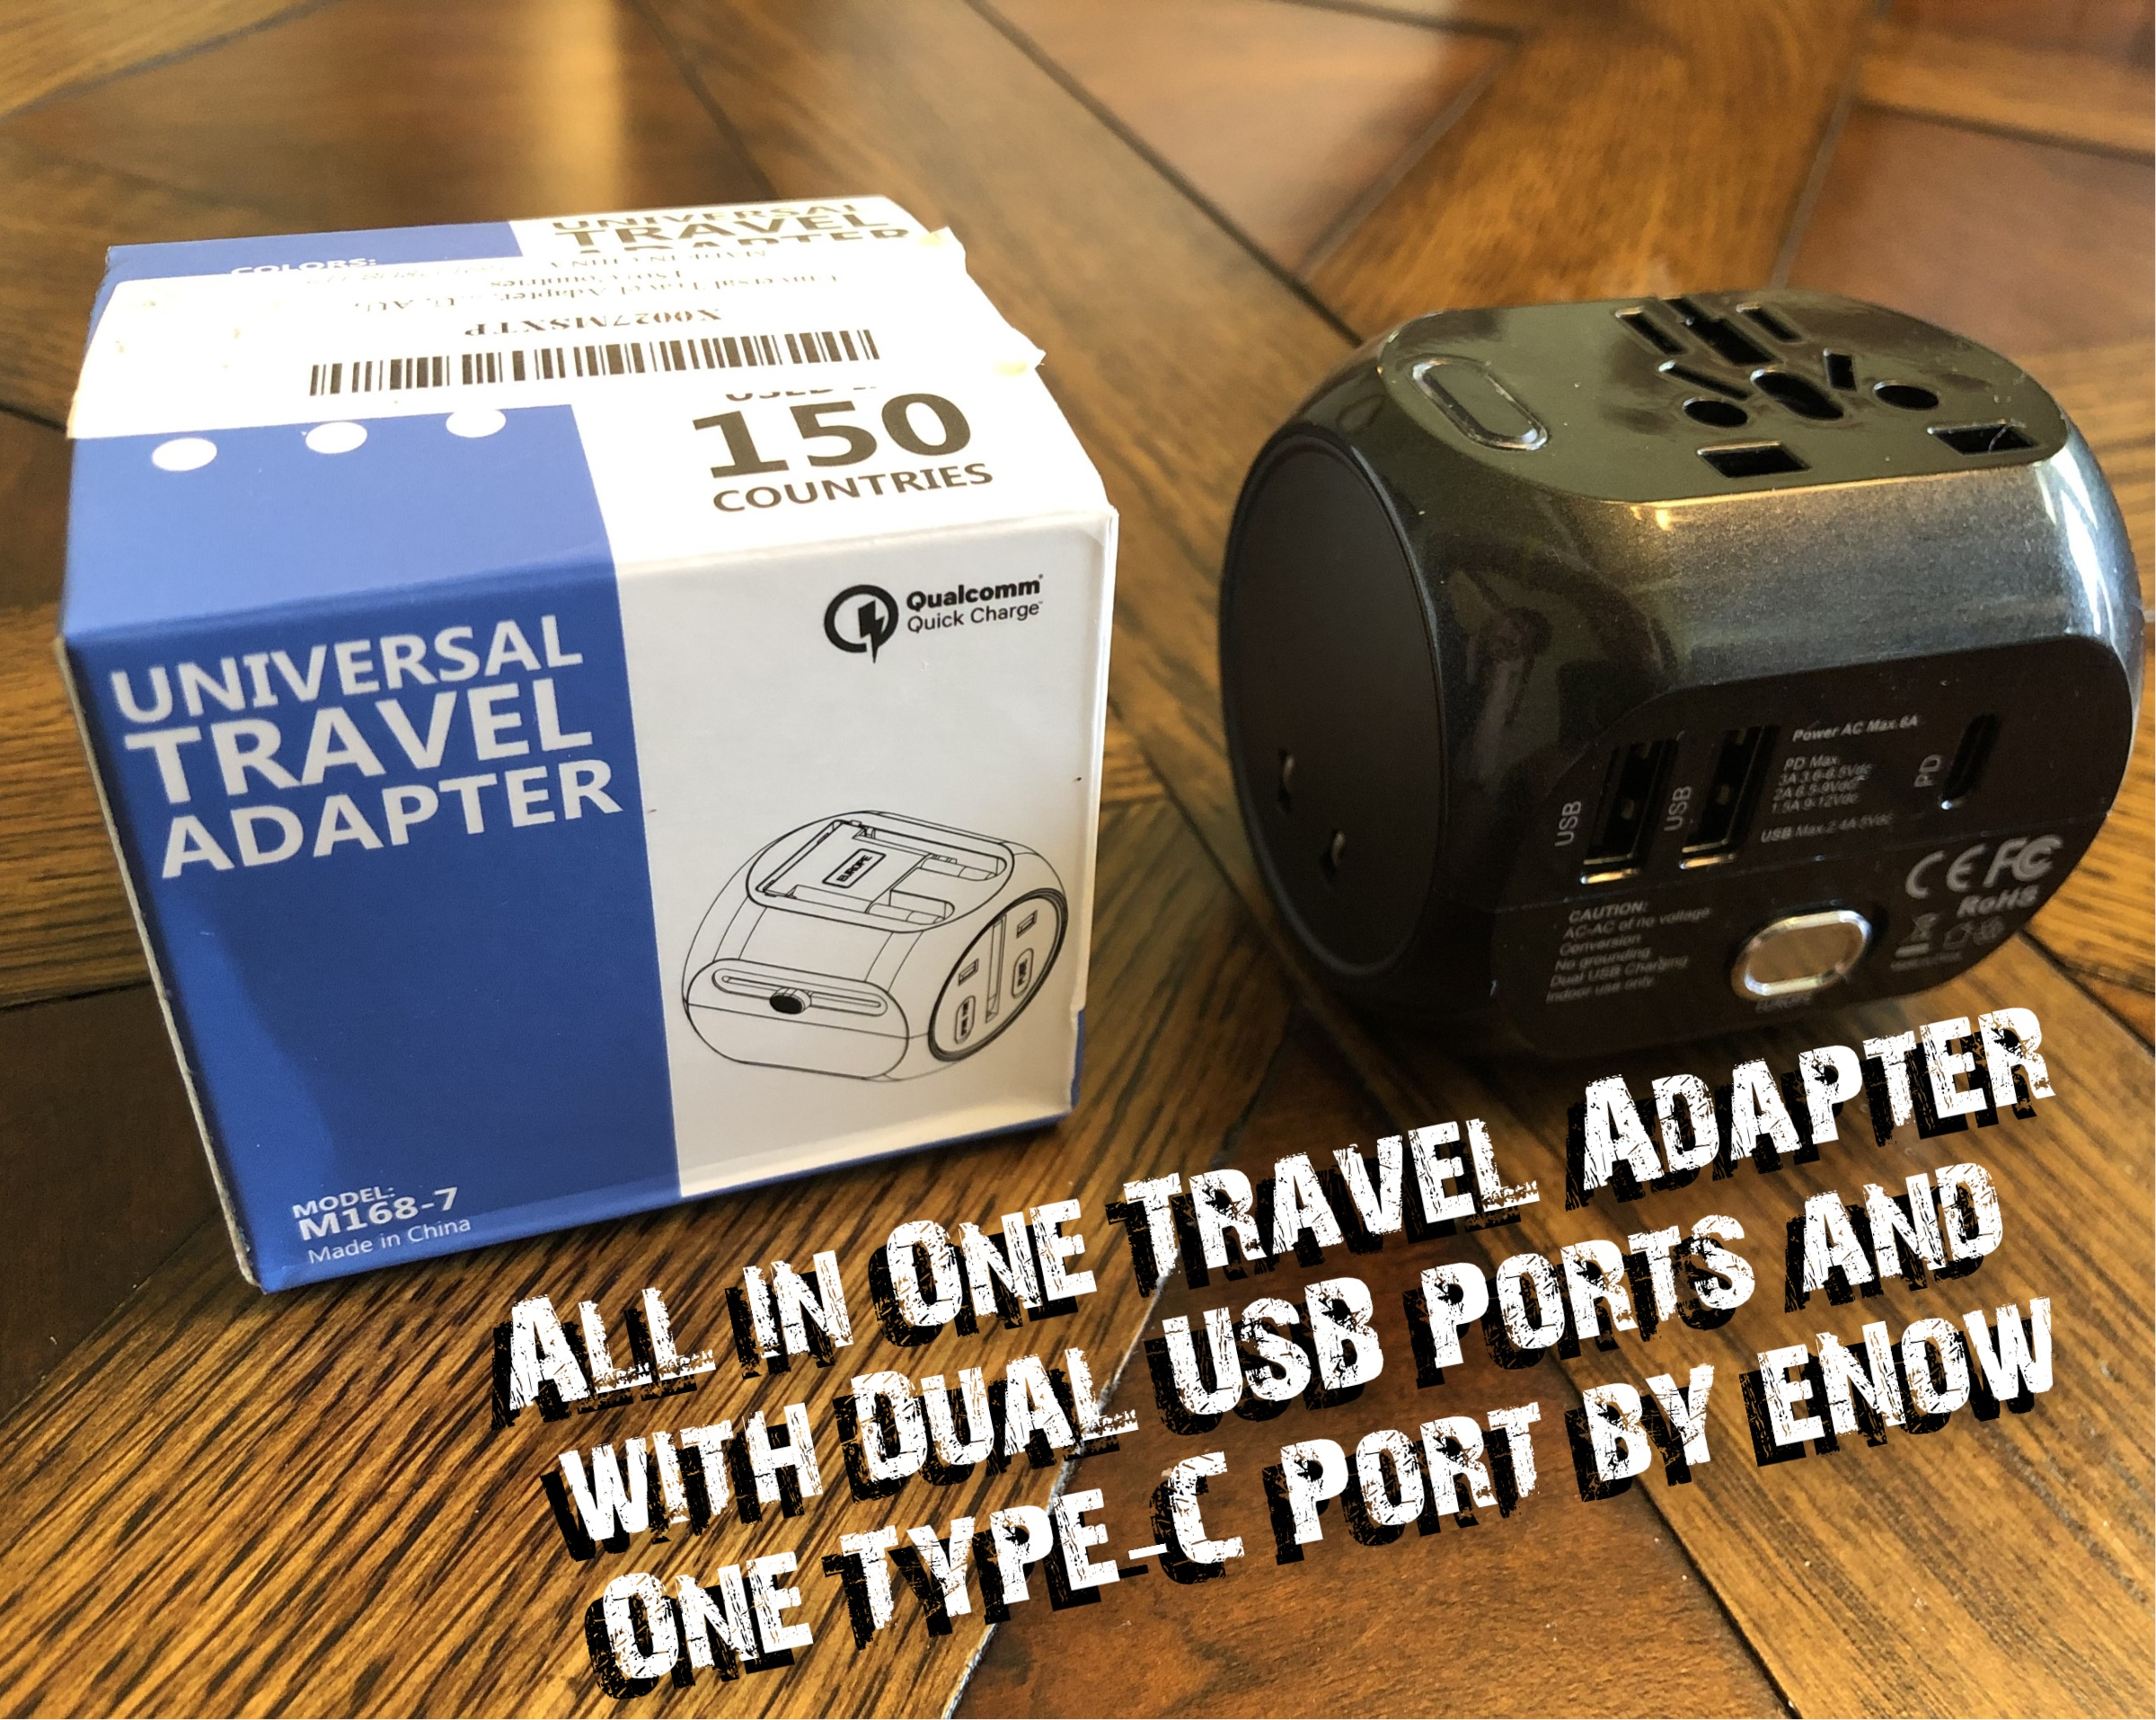 (All in One) Universal Travel Adapter with Dual 2.4A USB Charging Ports and One Type-C QC 3.0 Port by Enow